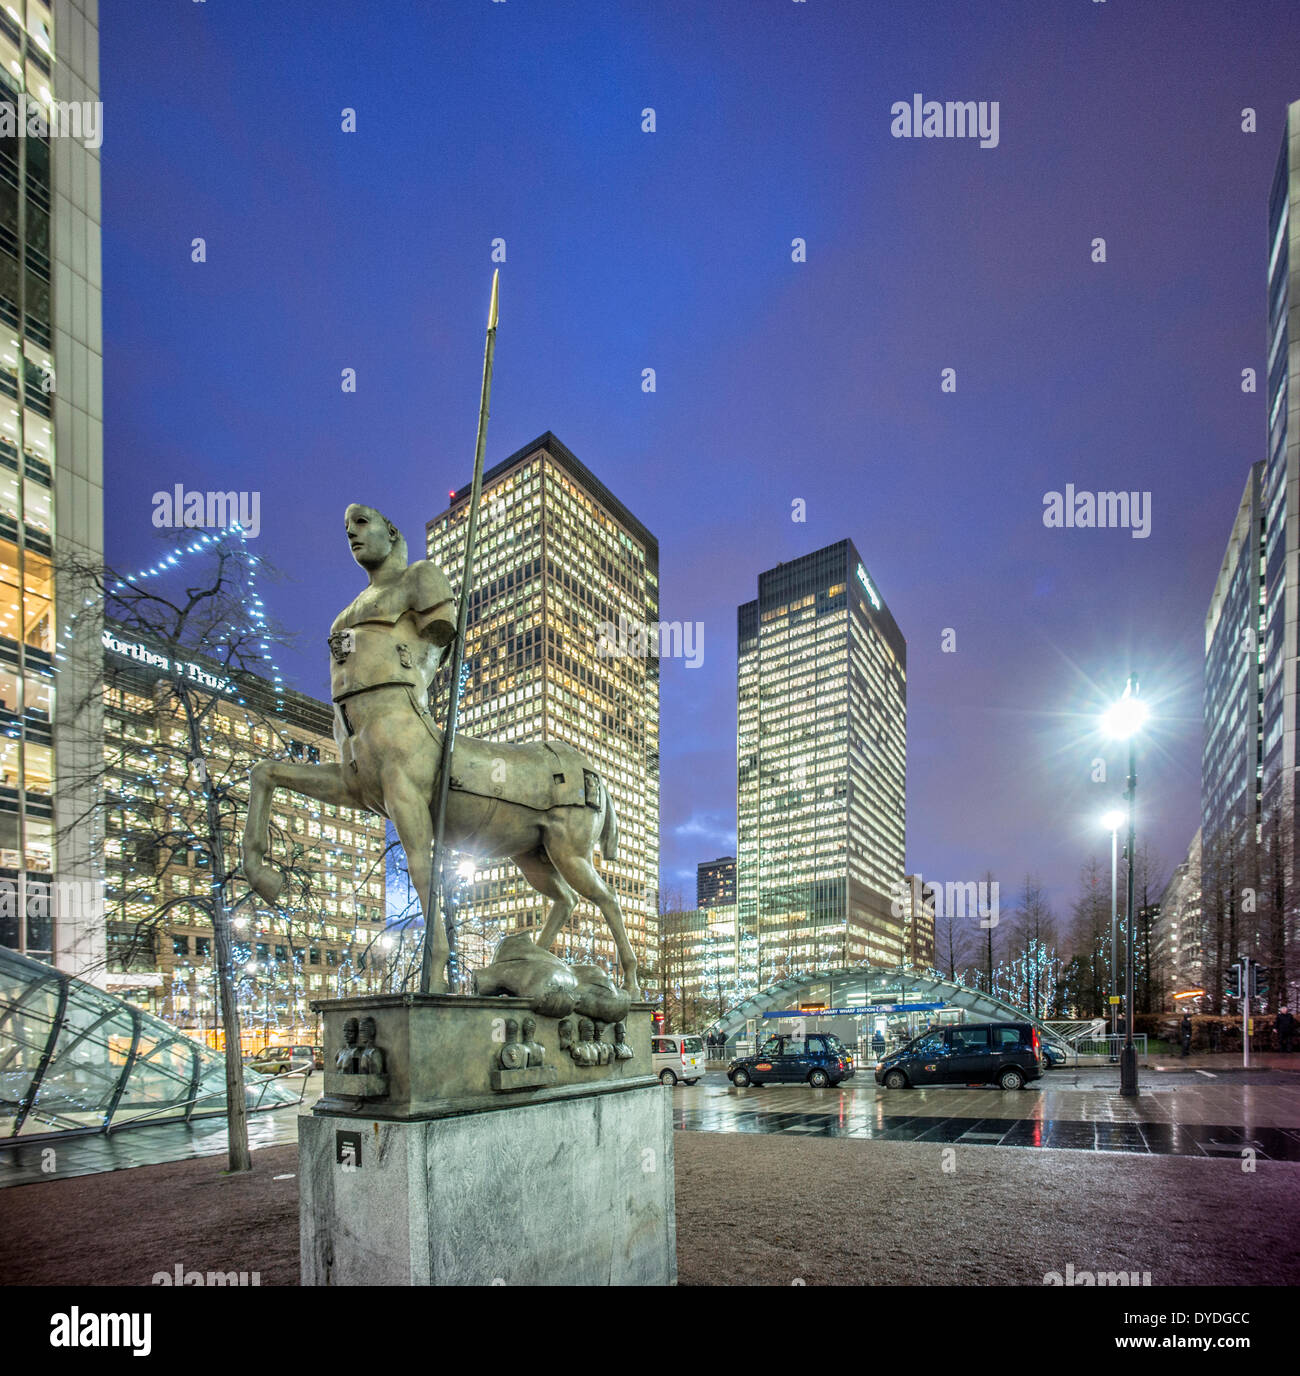 Canary Wharf at dusk. - Stock Image